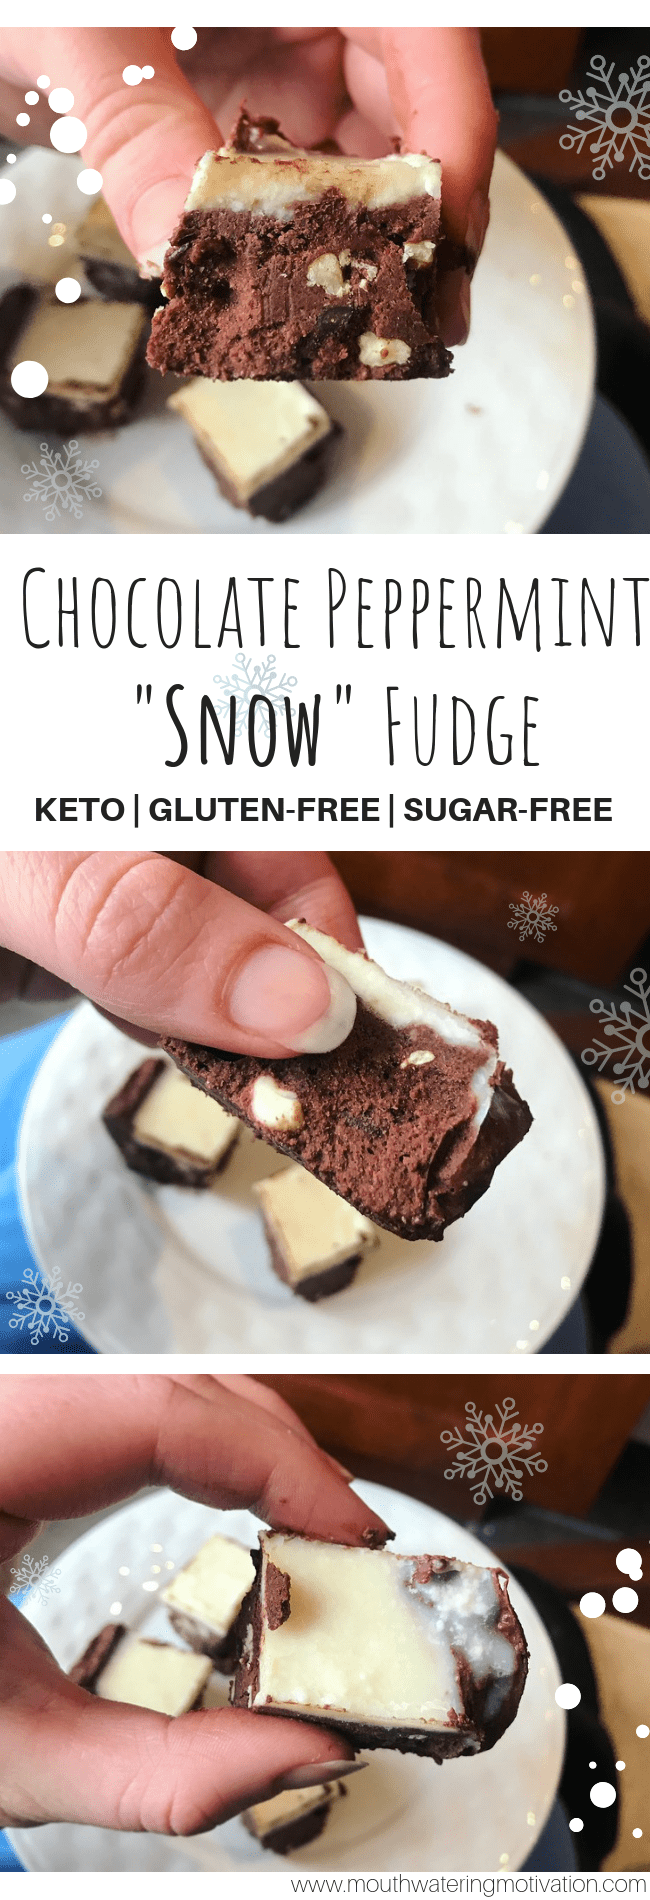 keto peppermint fudge